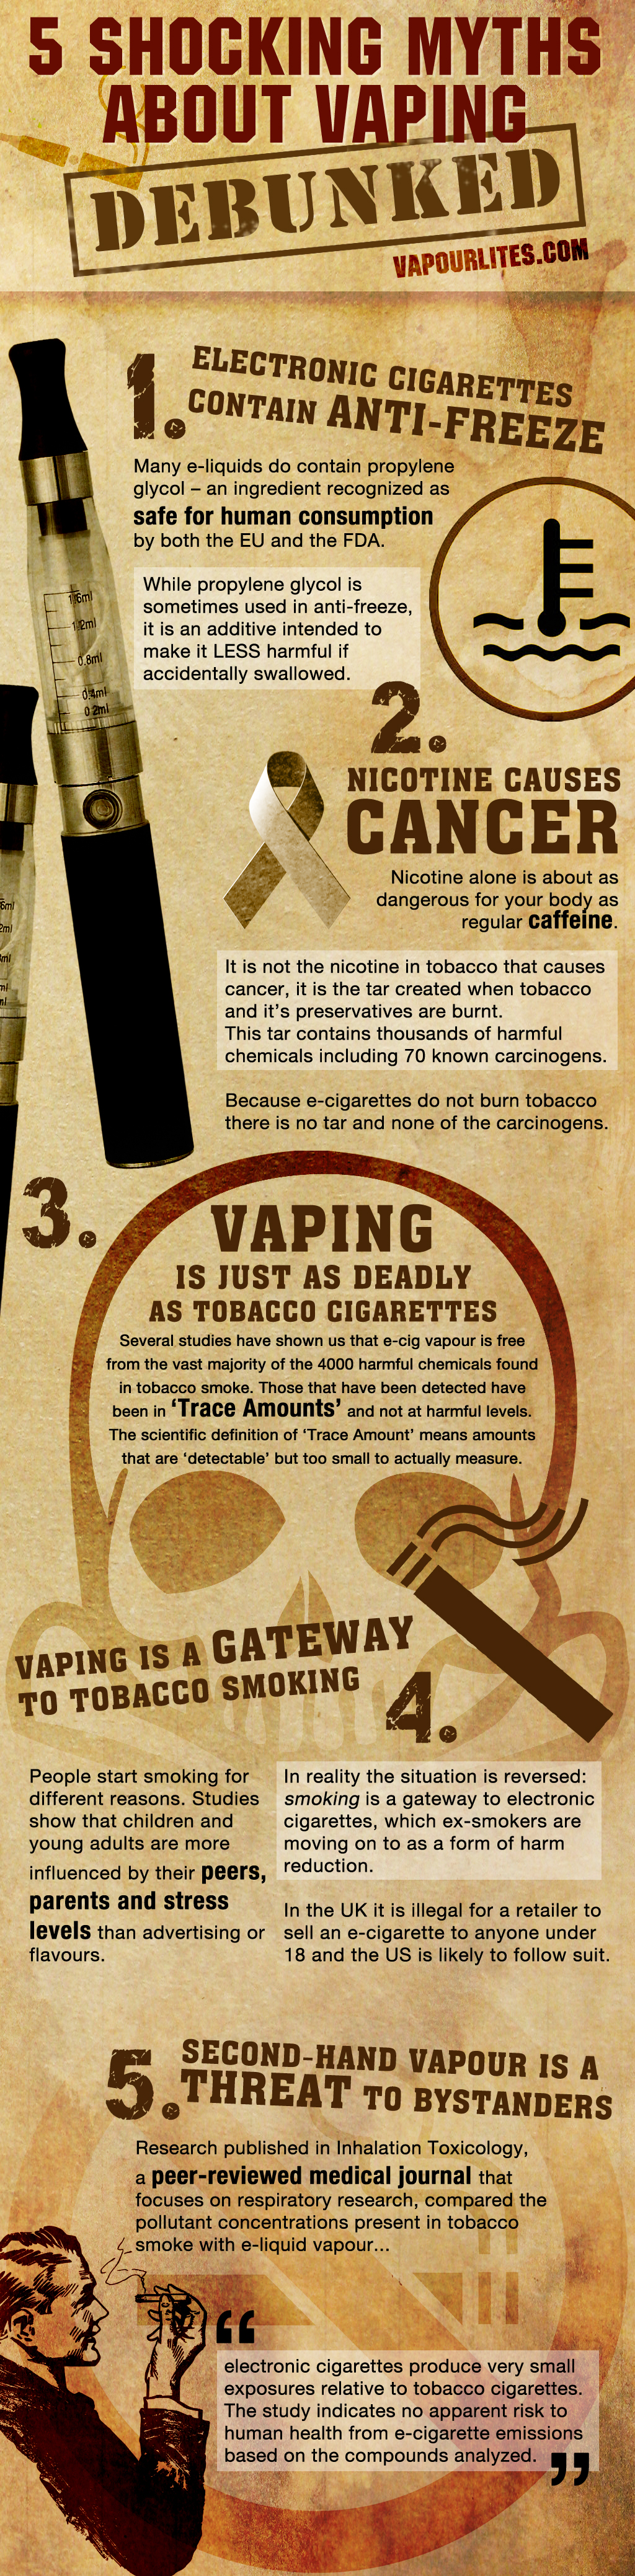 5 Shocking Myths About Vaping